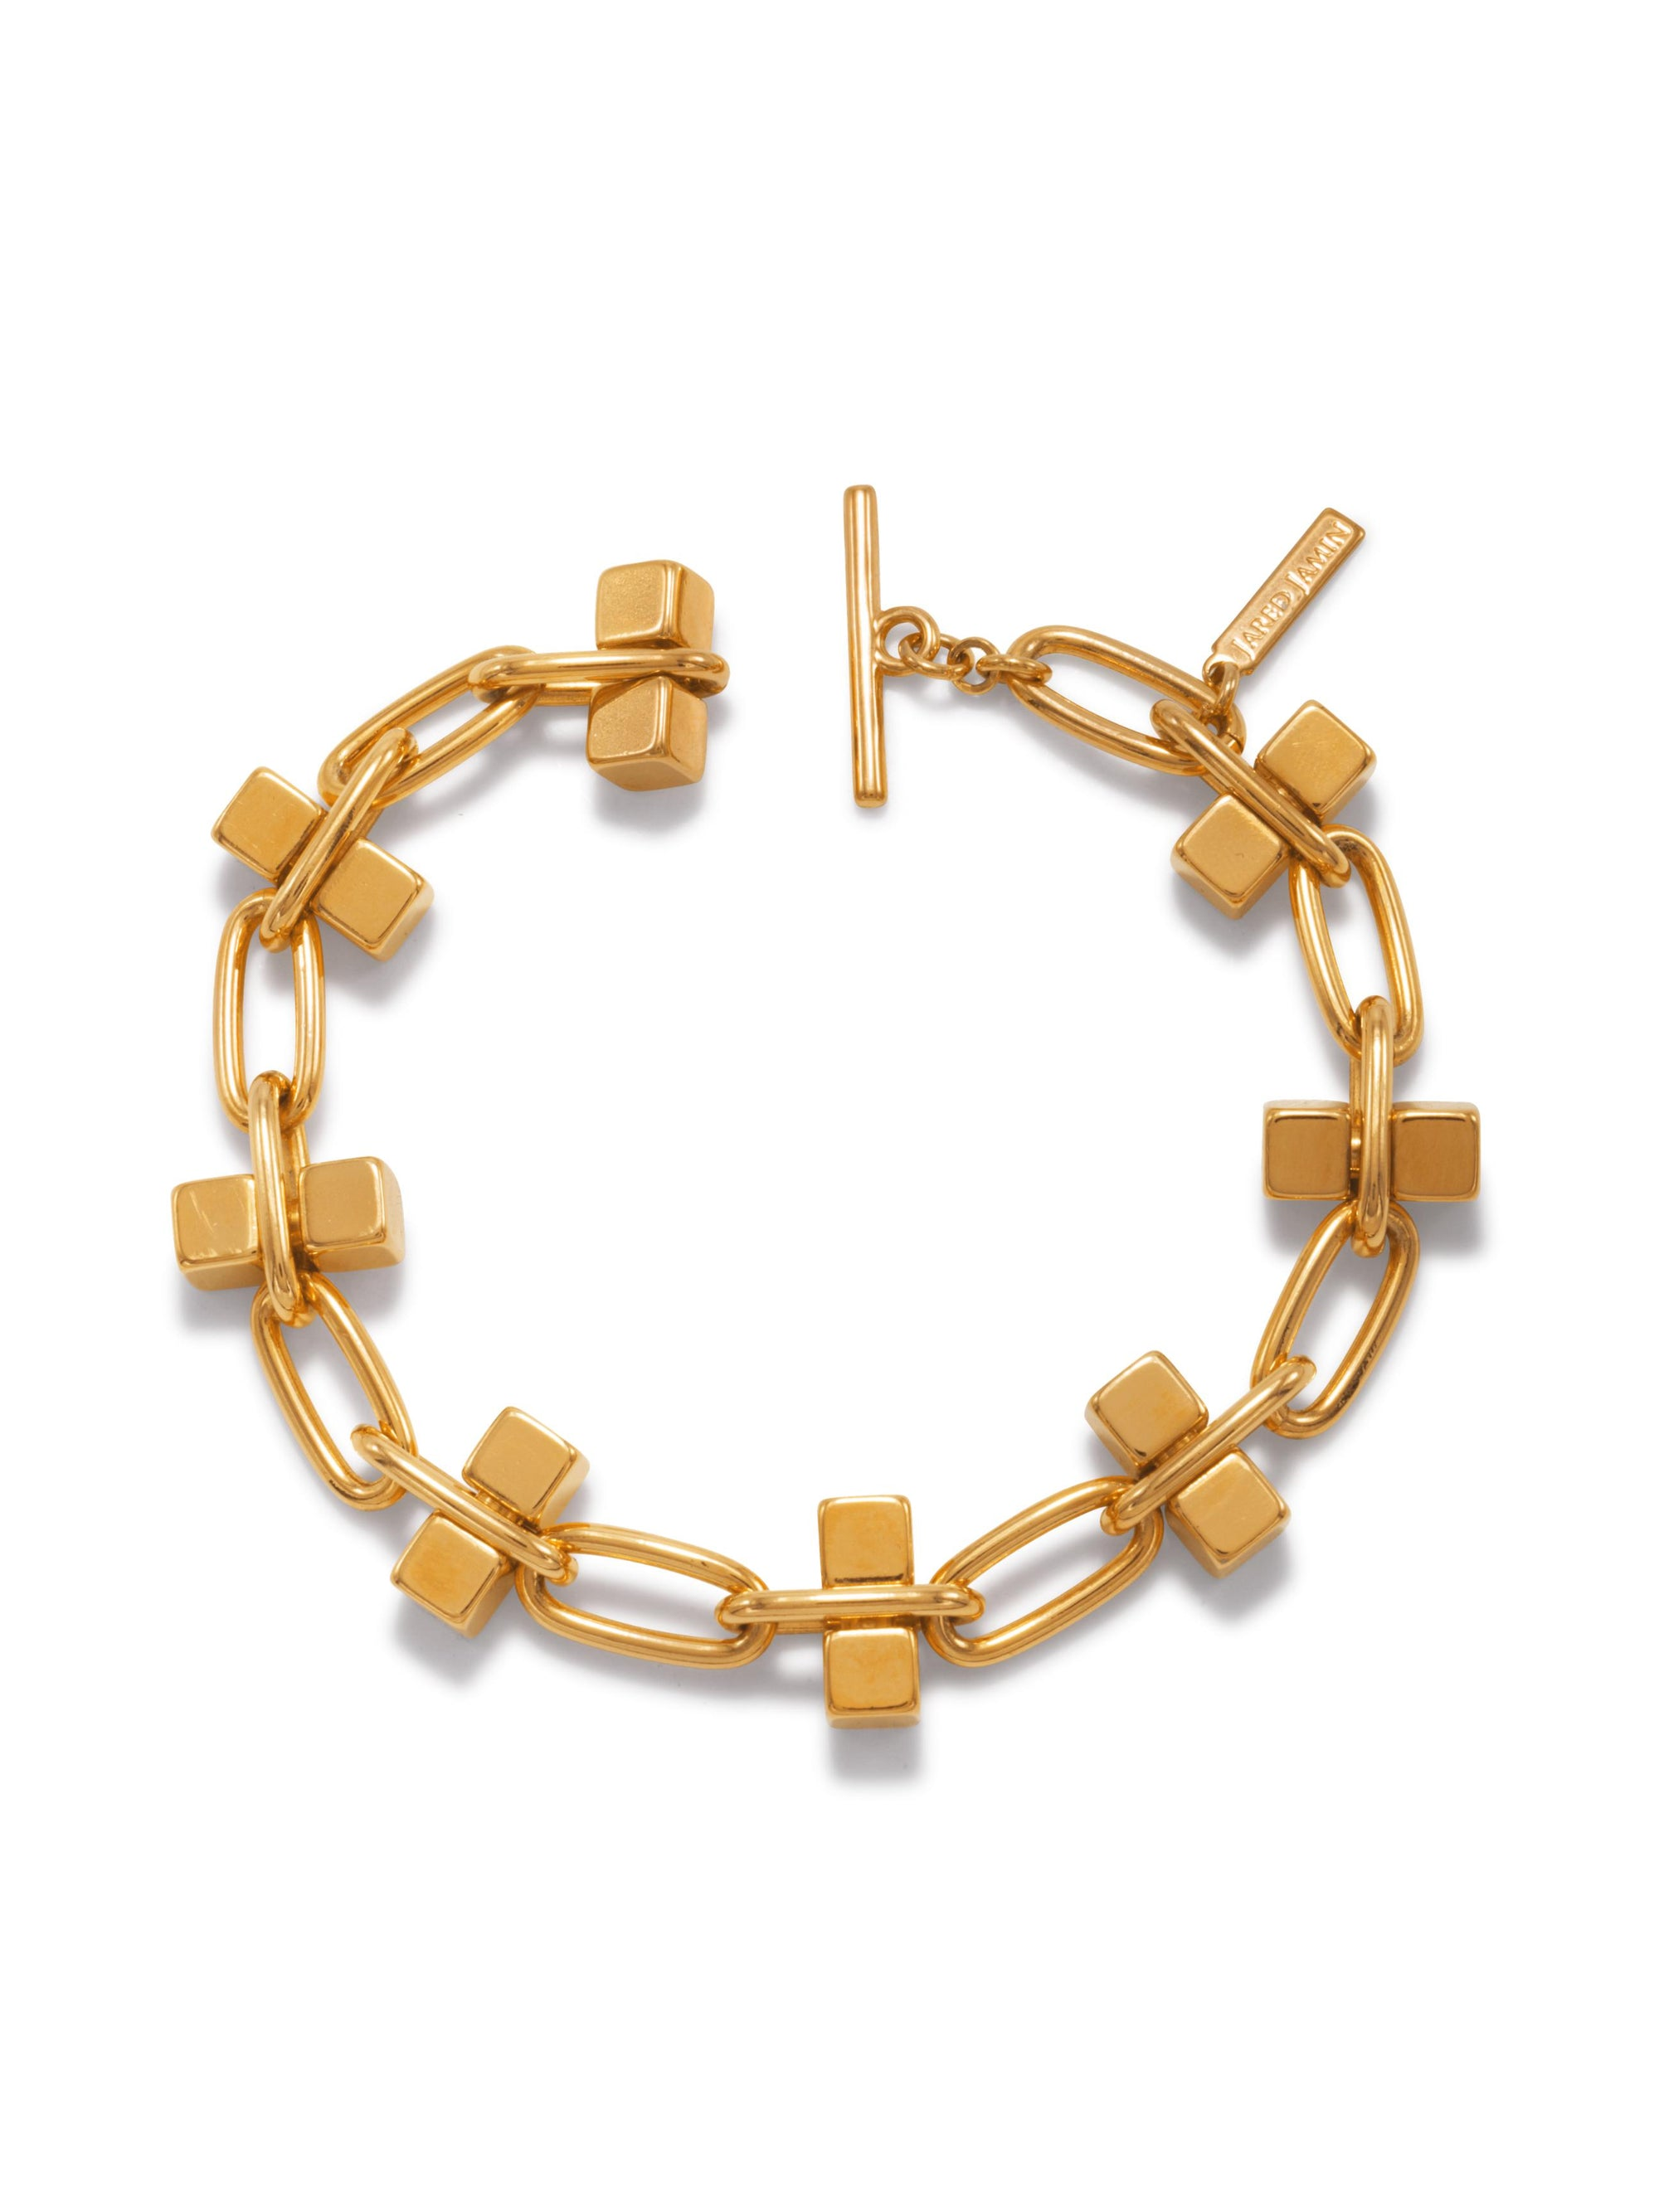 Blockbuster Gold Chain Bracelet-Bracelets-JAREDJAMIN Jewelry Online-JAREDJAMIN - Fashion Jewelry & Accessories